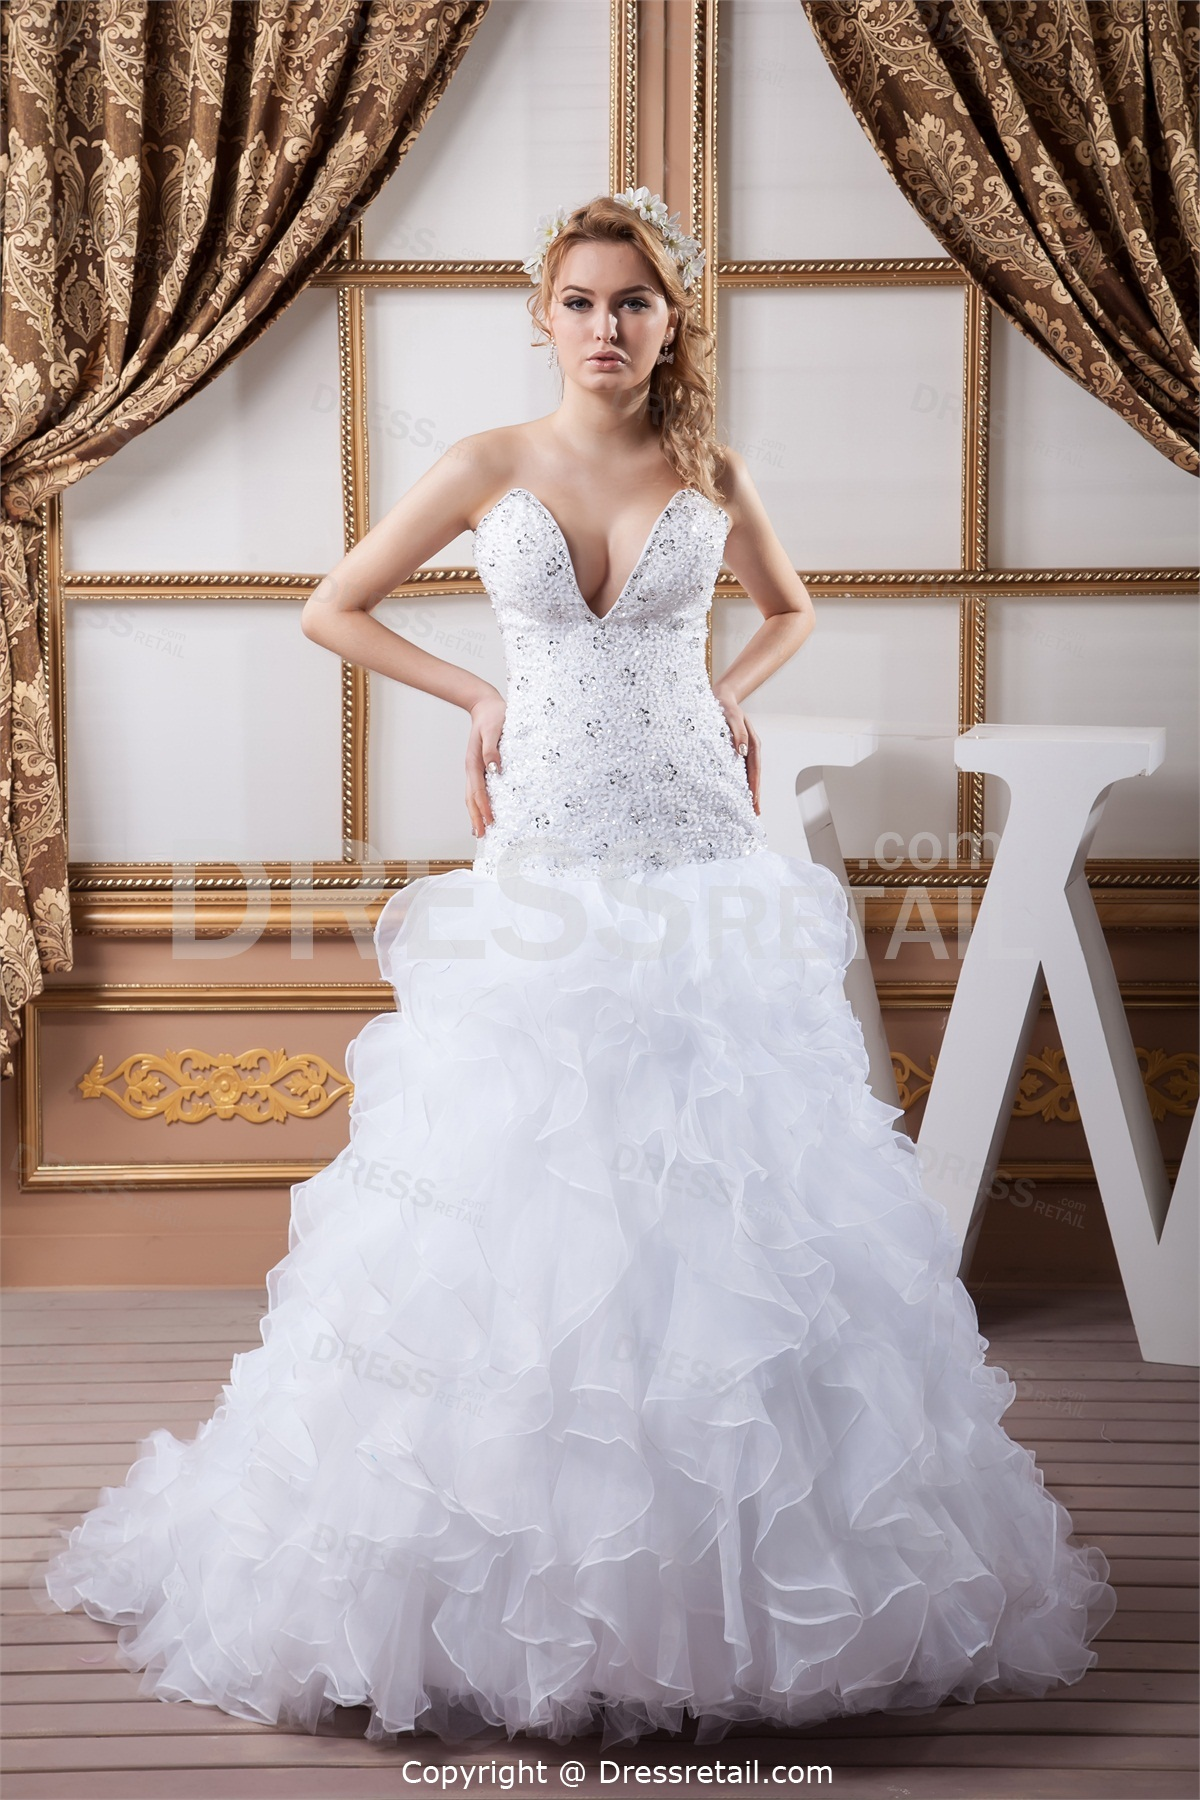 Sexy wedding dresses 2014 2015 fashion trends 2016 2017 for Hot dresses for weddings